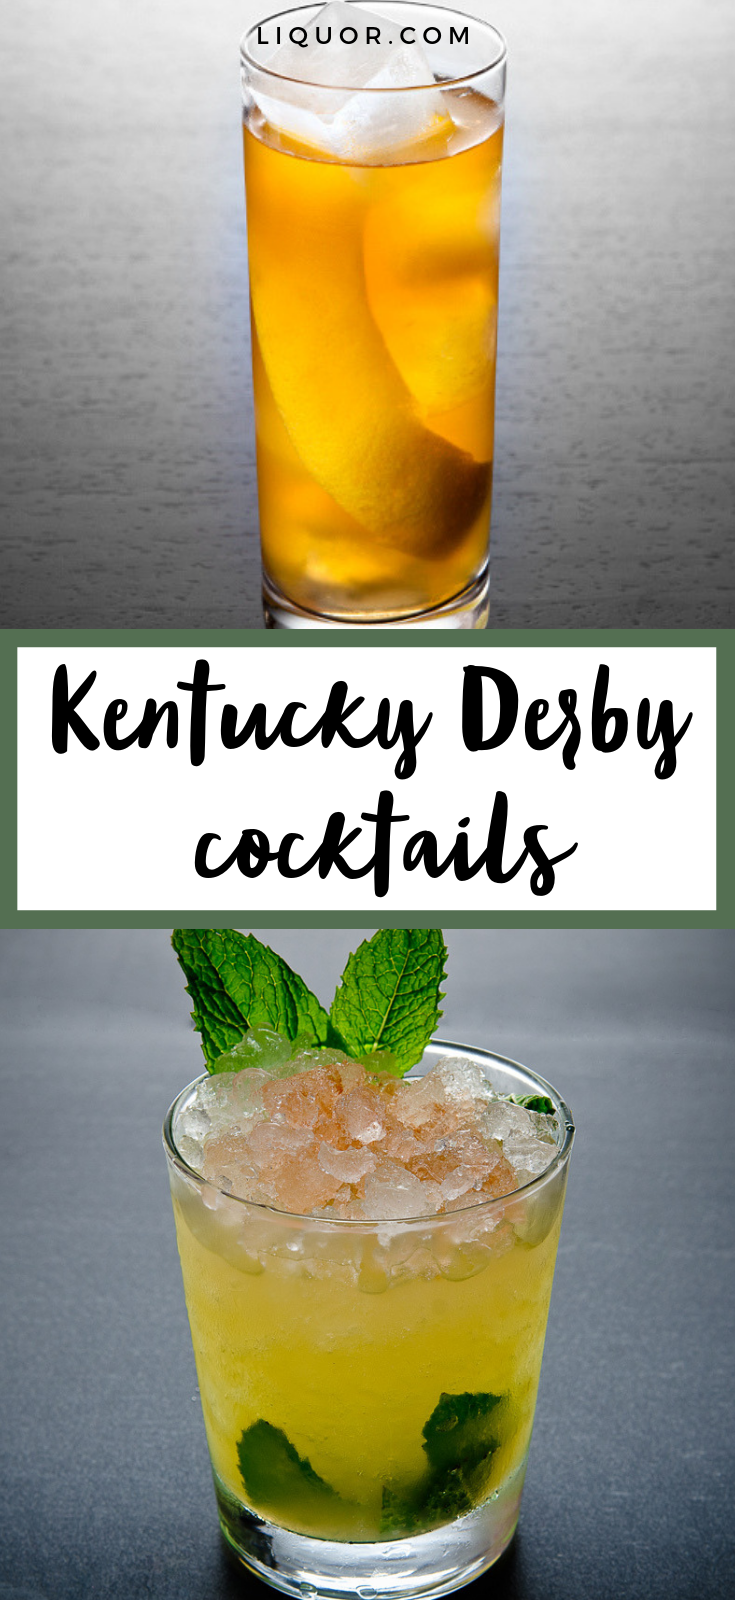 25 Cocktails for Derby Day   Kentucky derby drinks, Mint julep ...